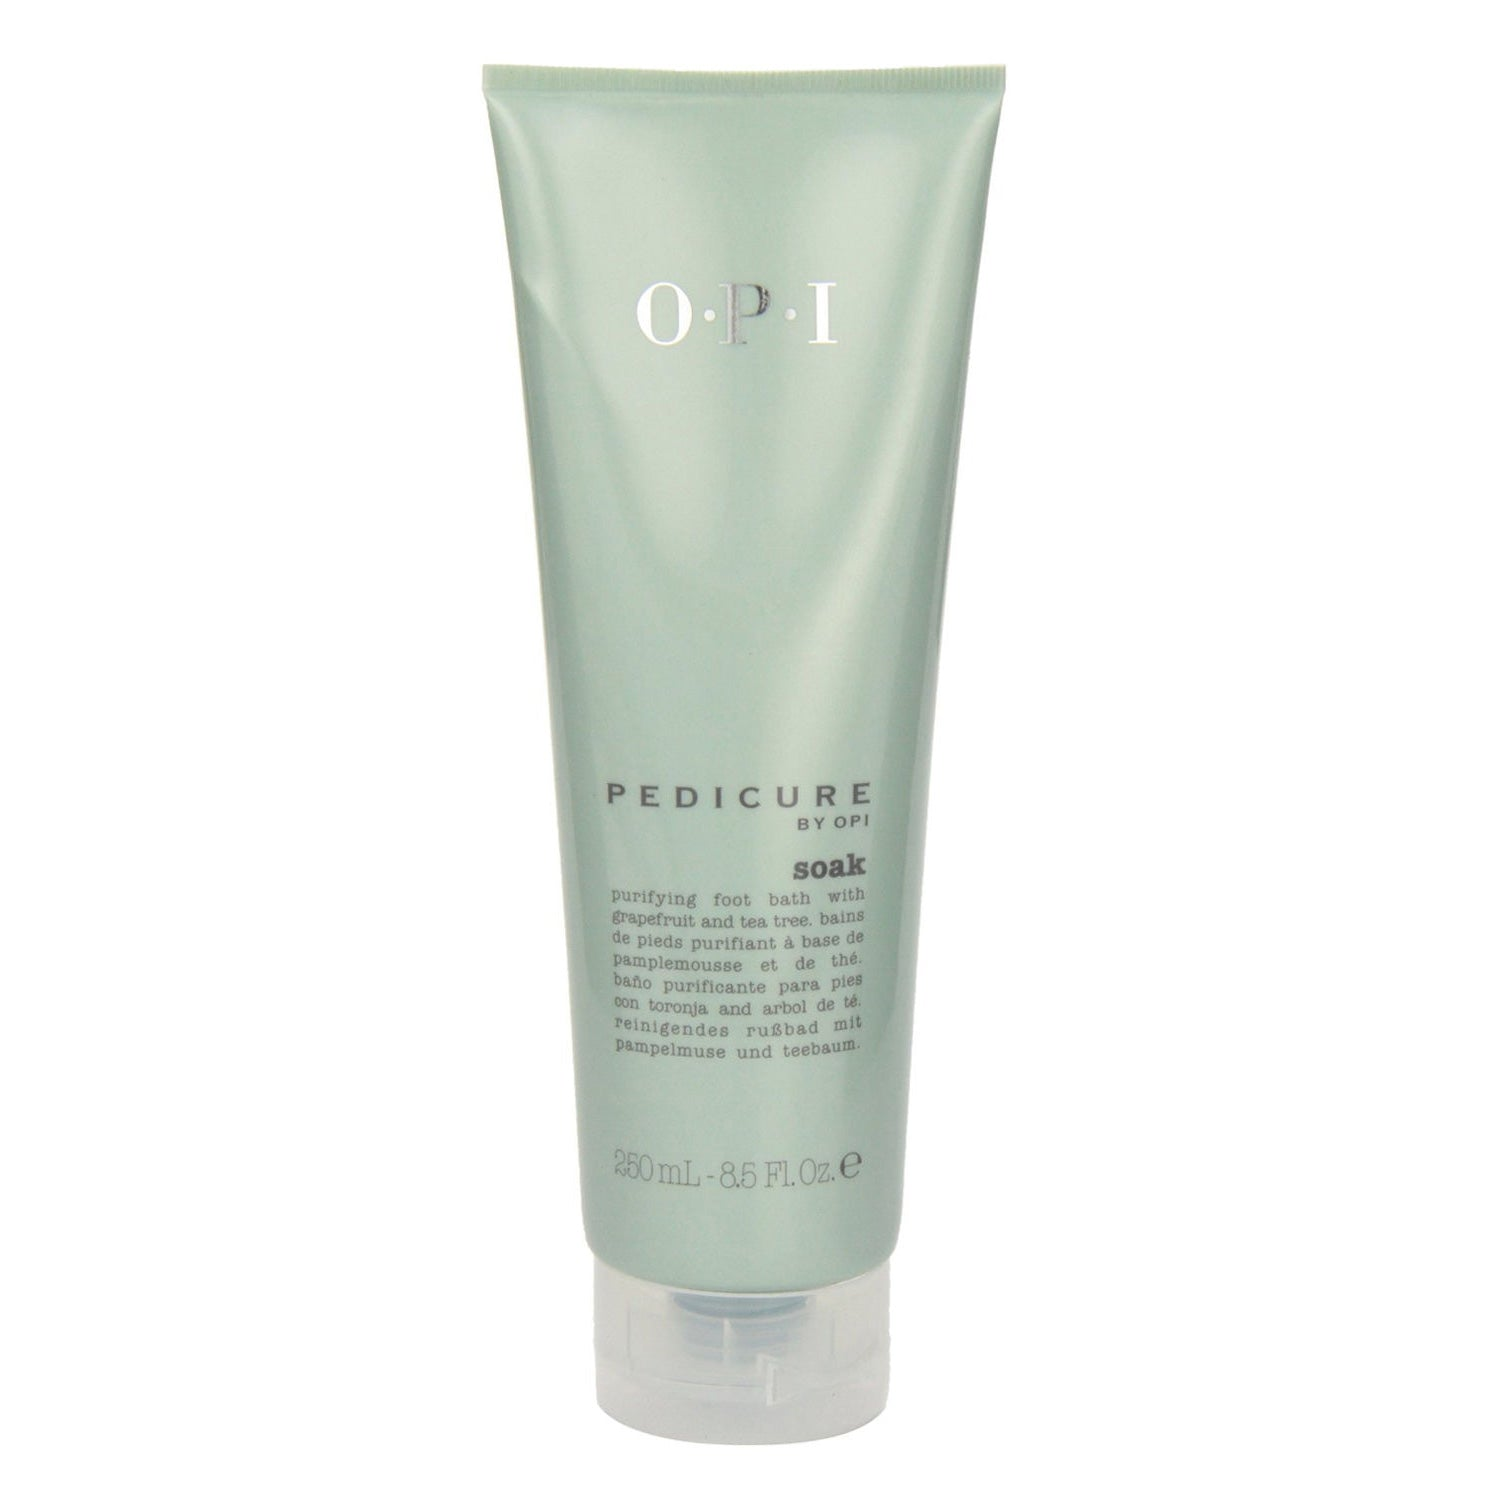 Opi Pedicure Soak 8.5 oz